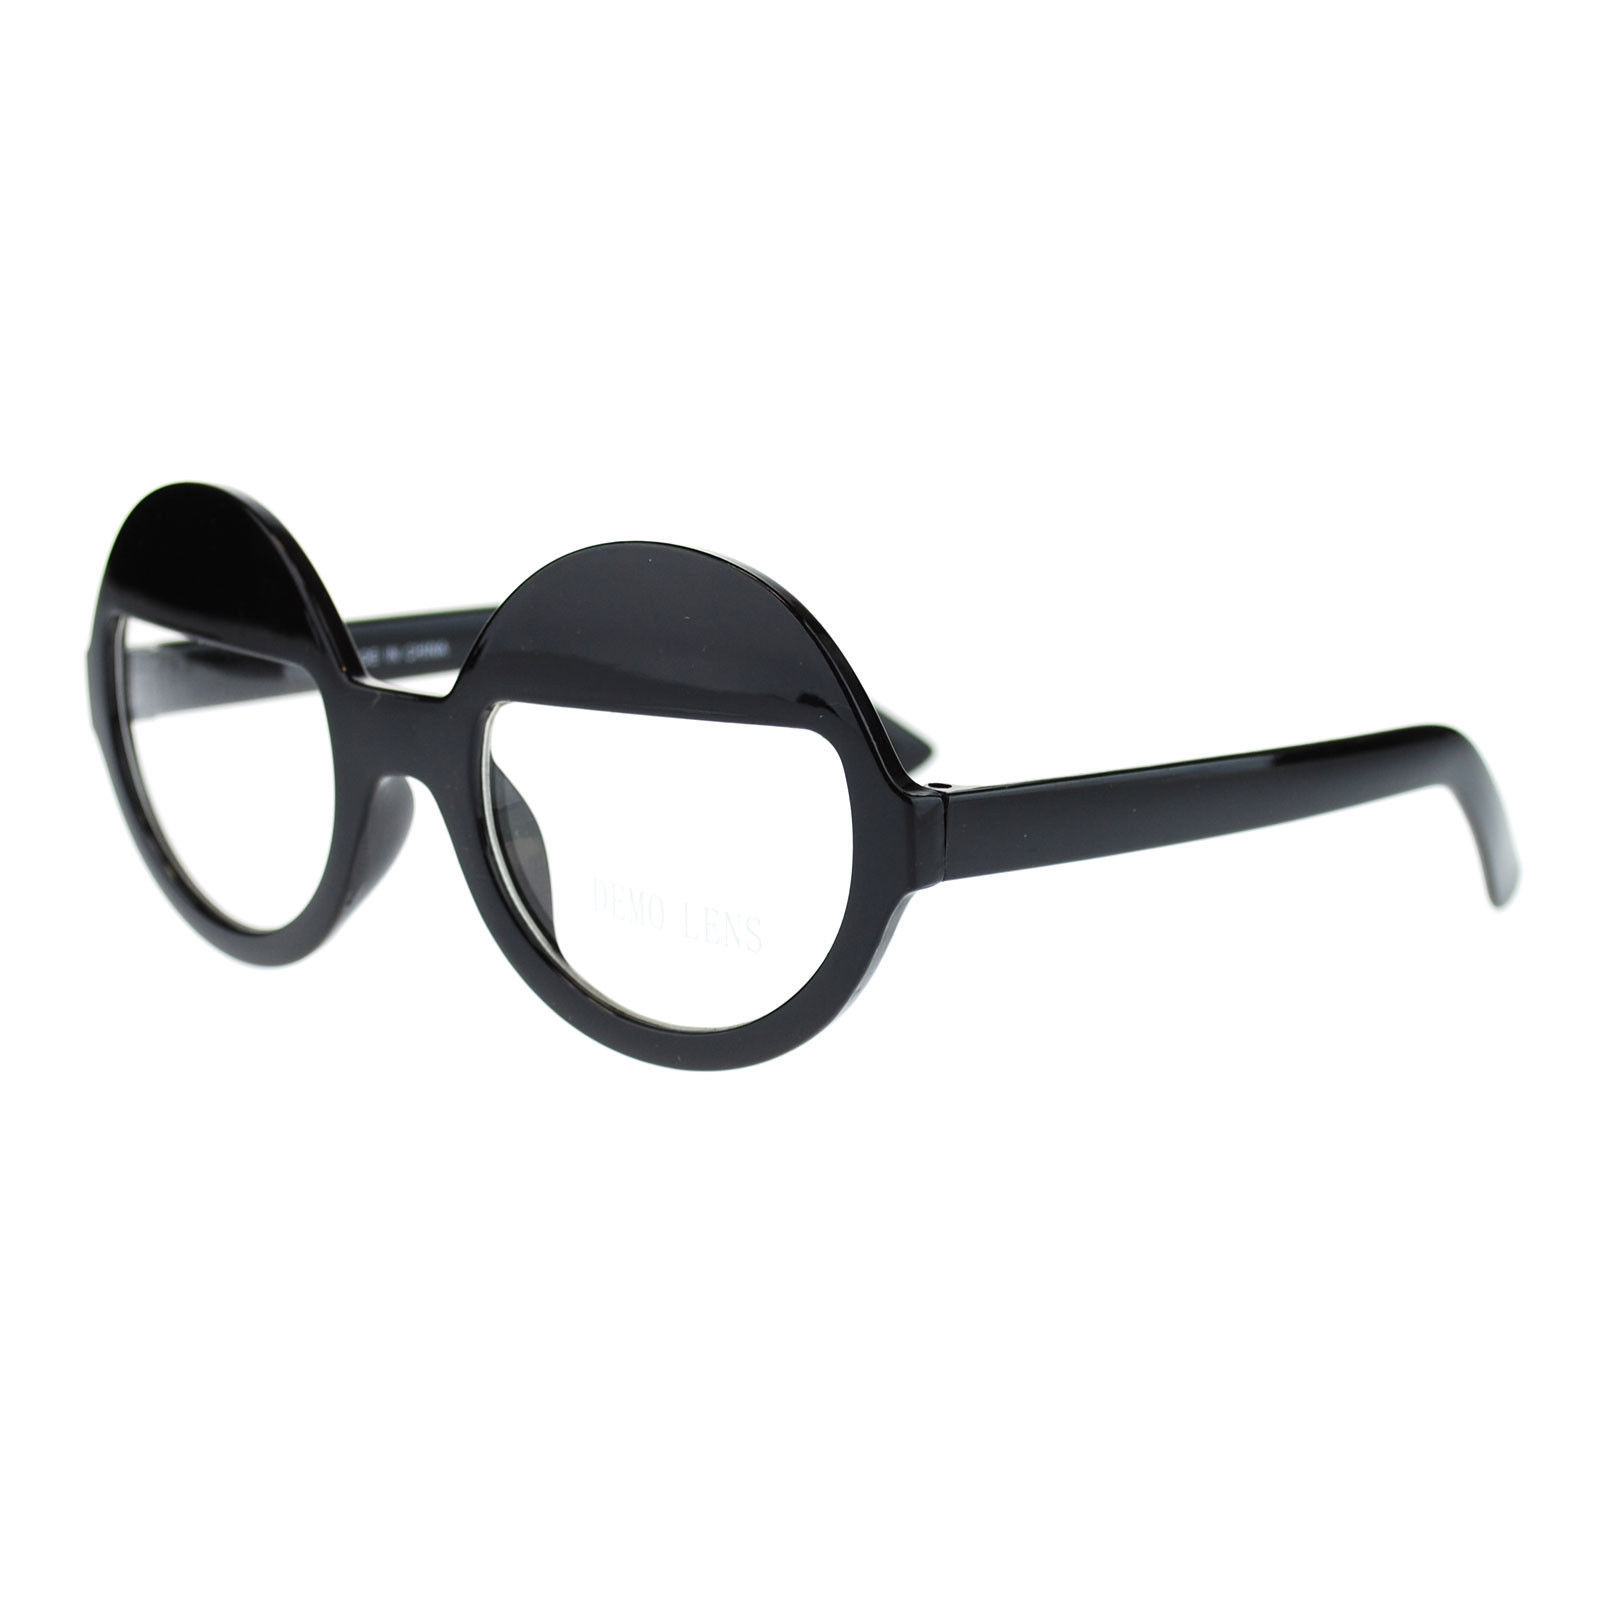 d29eb39c94 Thick Round Glasses Frames With Replaceable Lens - Bitterroot Public ...